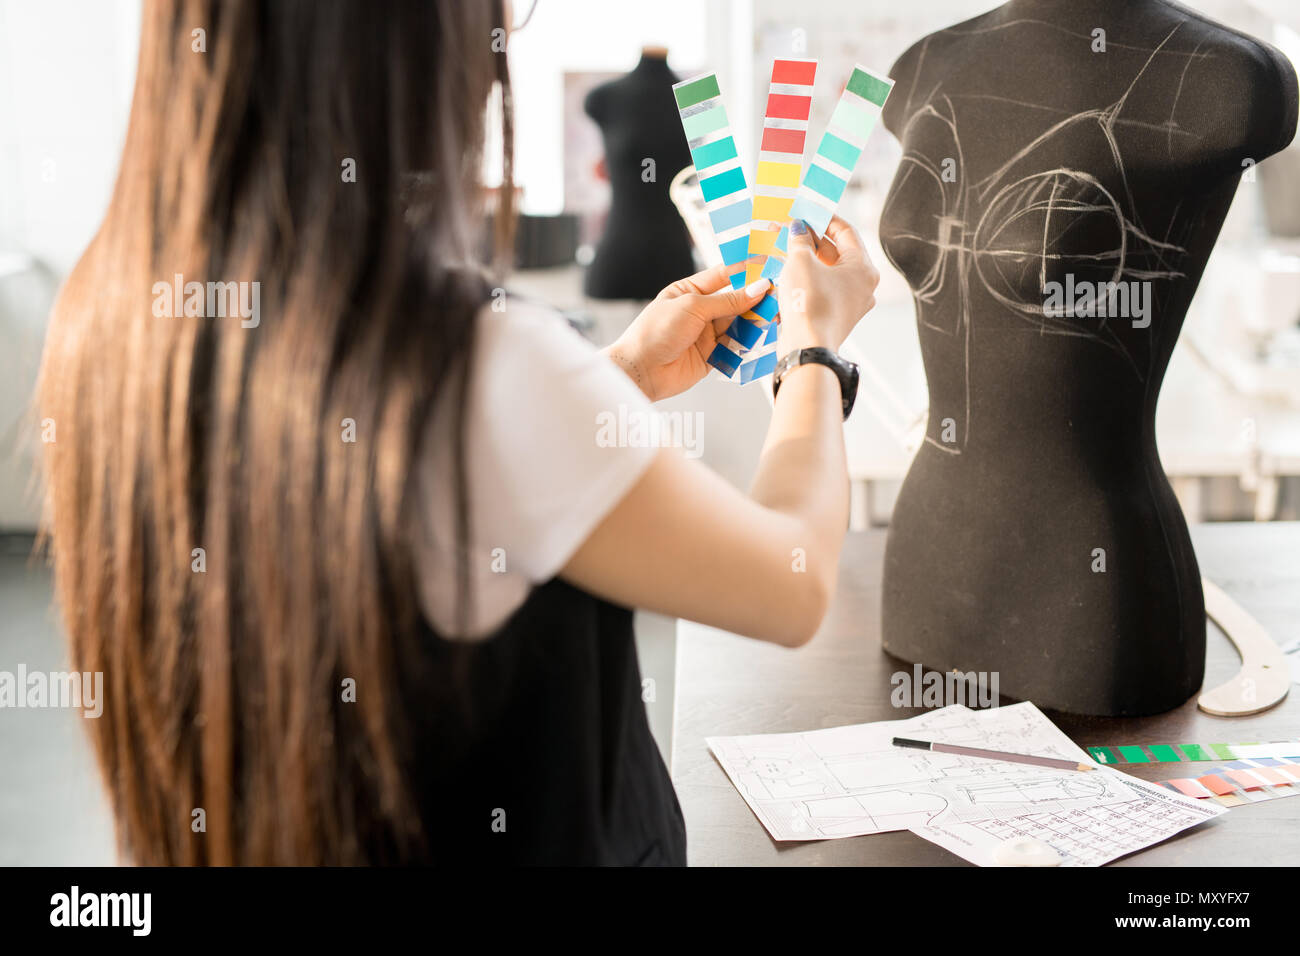 Back view portrait of focused Asian woman working in fashion design choosing color palette holding swatches standing at table by sewing dummy in moder - Stock Image